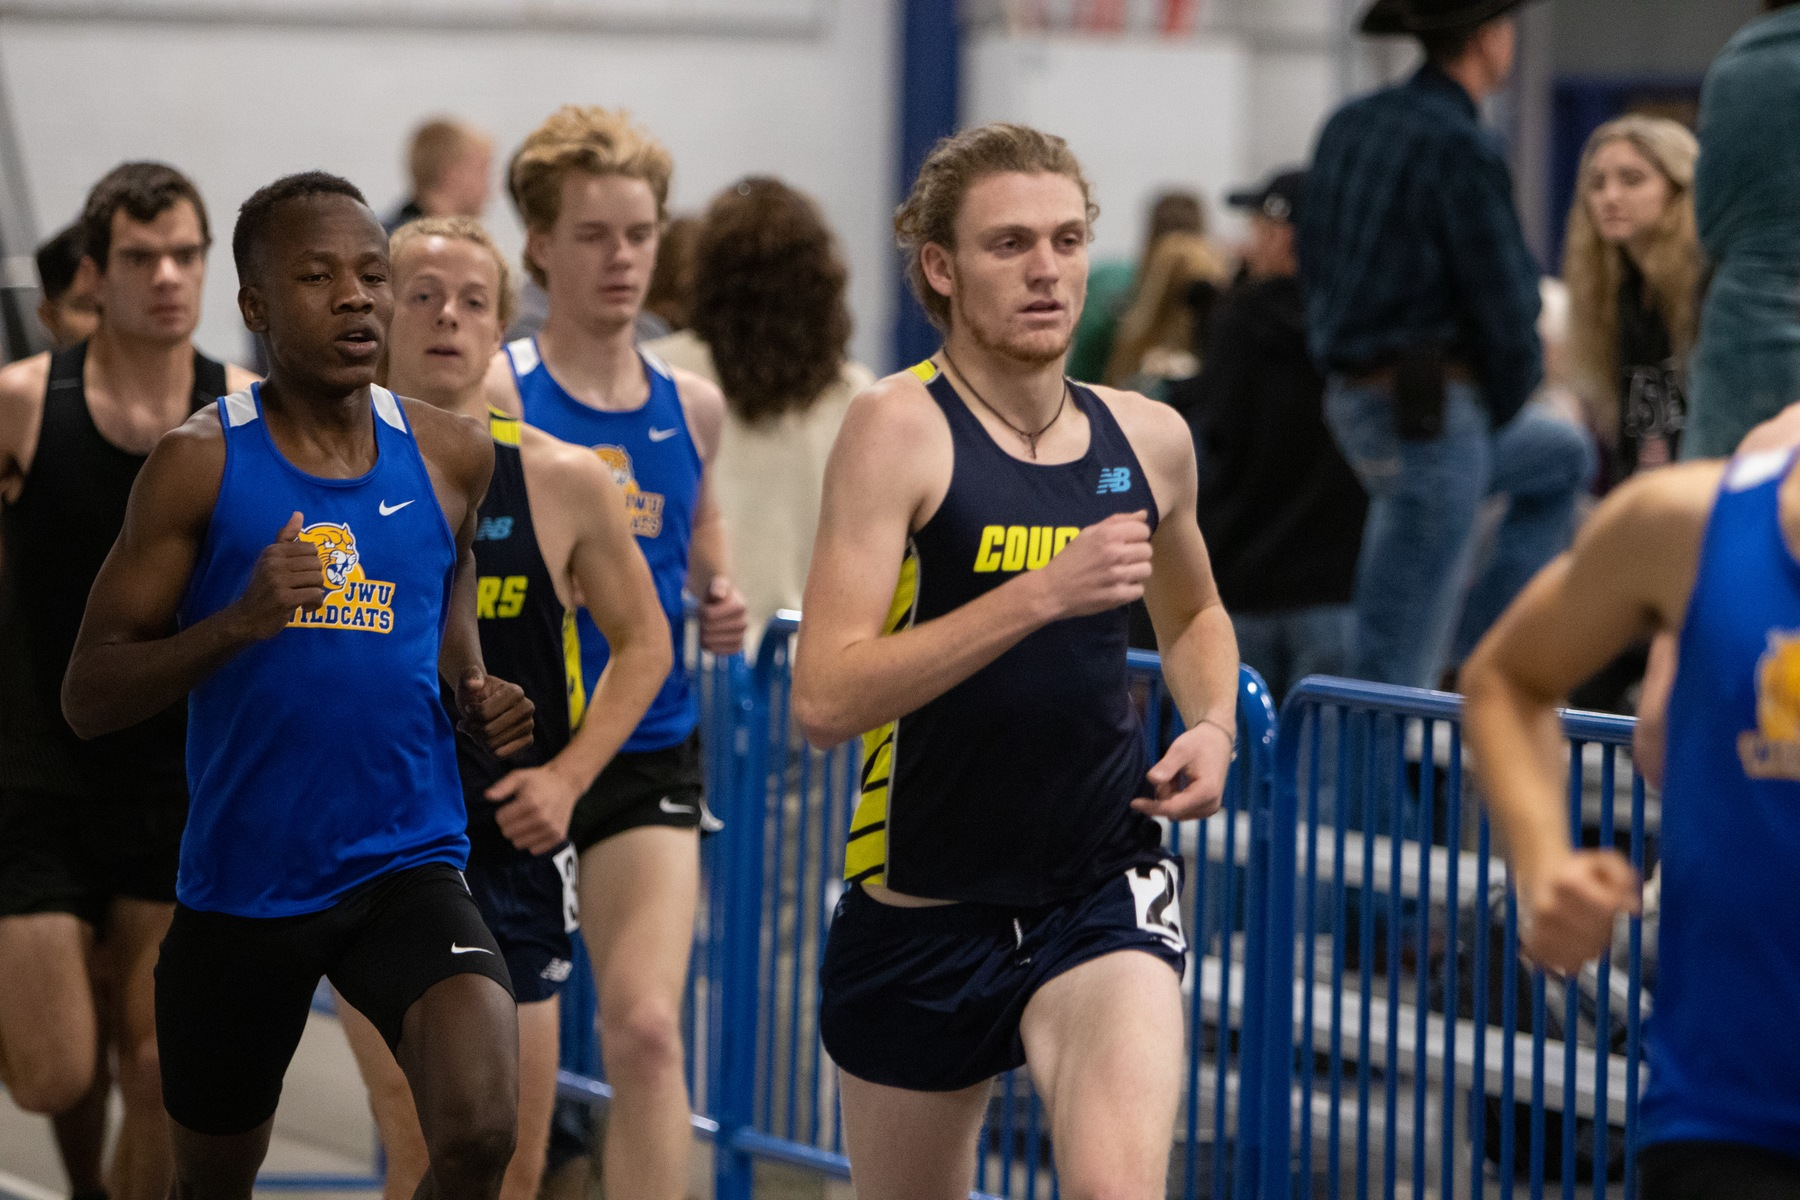 Men's track opens indoor season at Mines